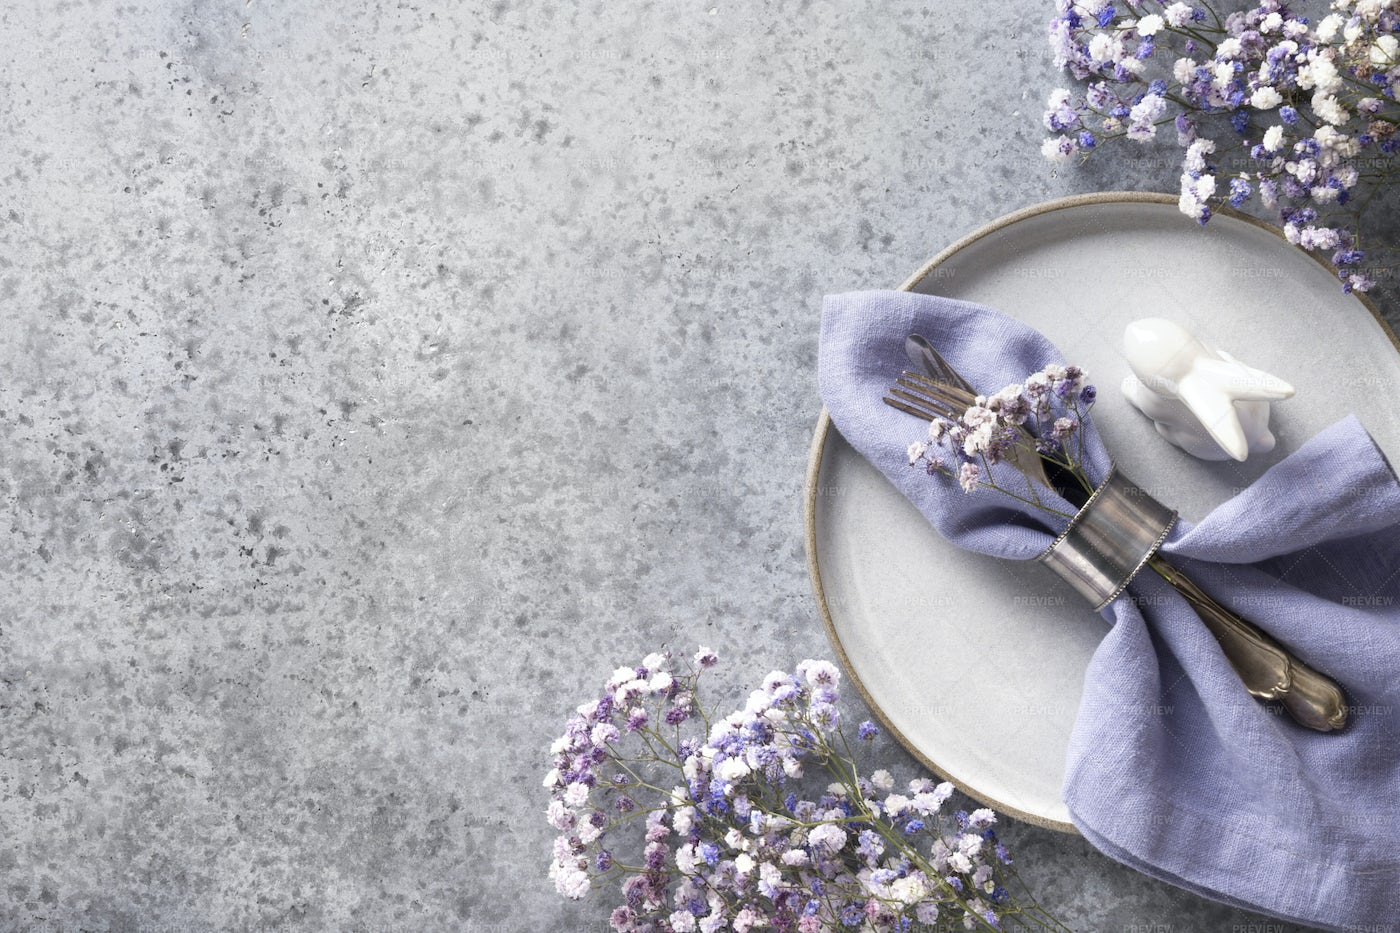 Violet Easter Table Setting: Stock Photos